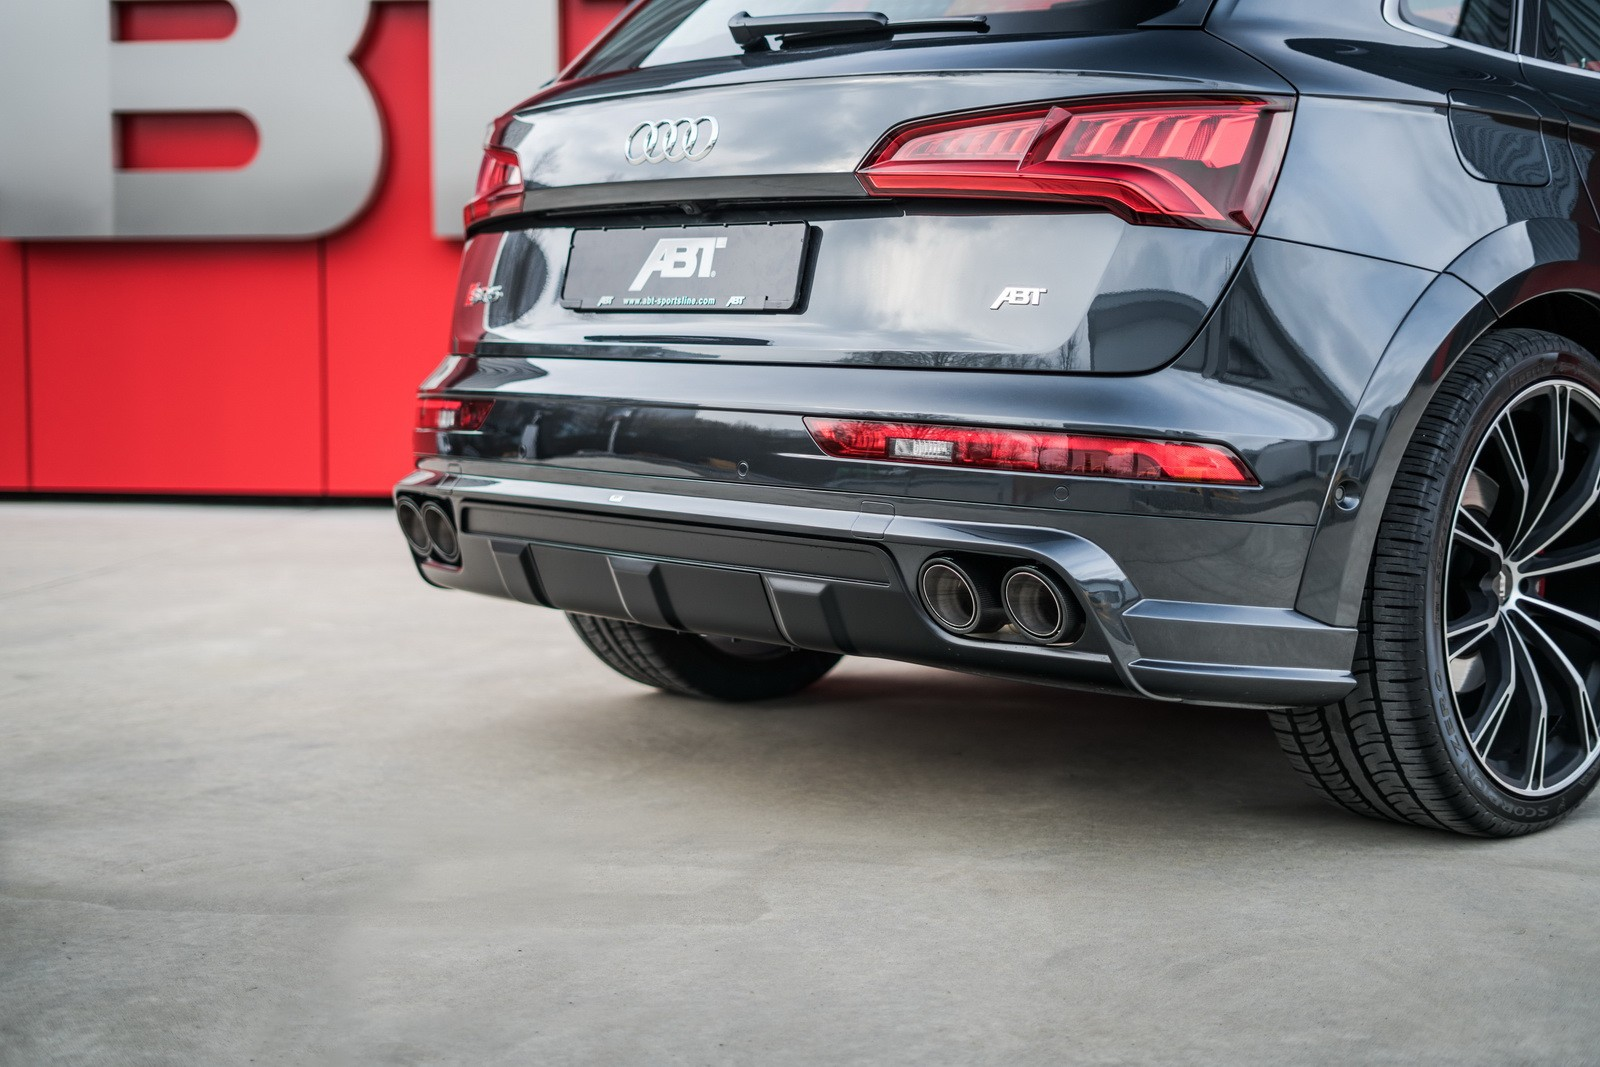 Audi SQ5 Tuning by ABT Includes Widebody Kit and 425 HP ...